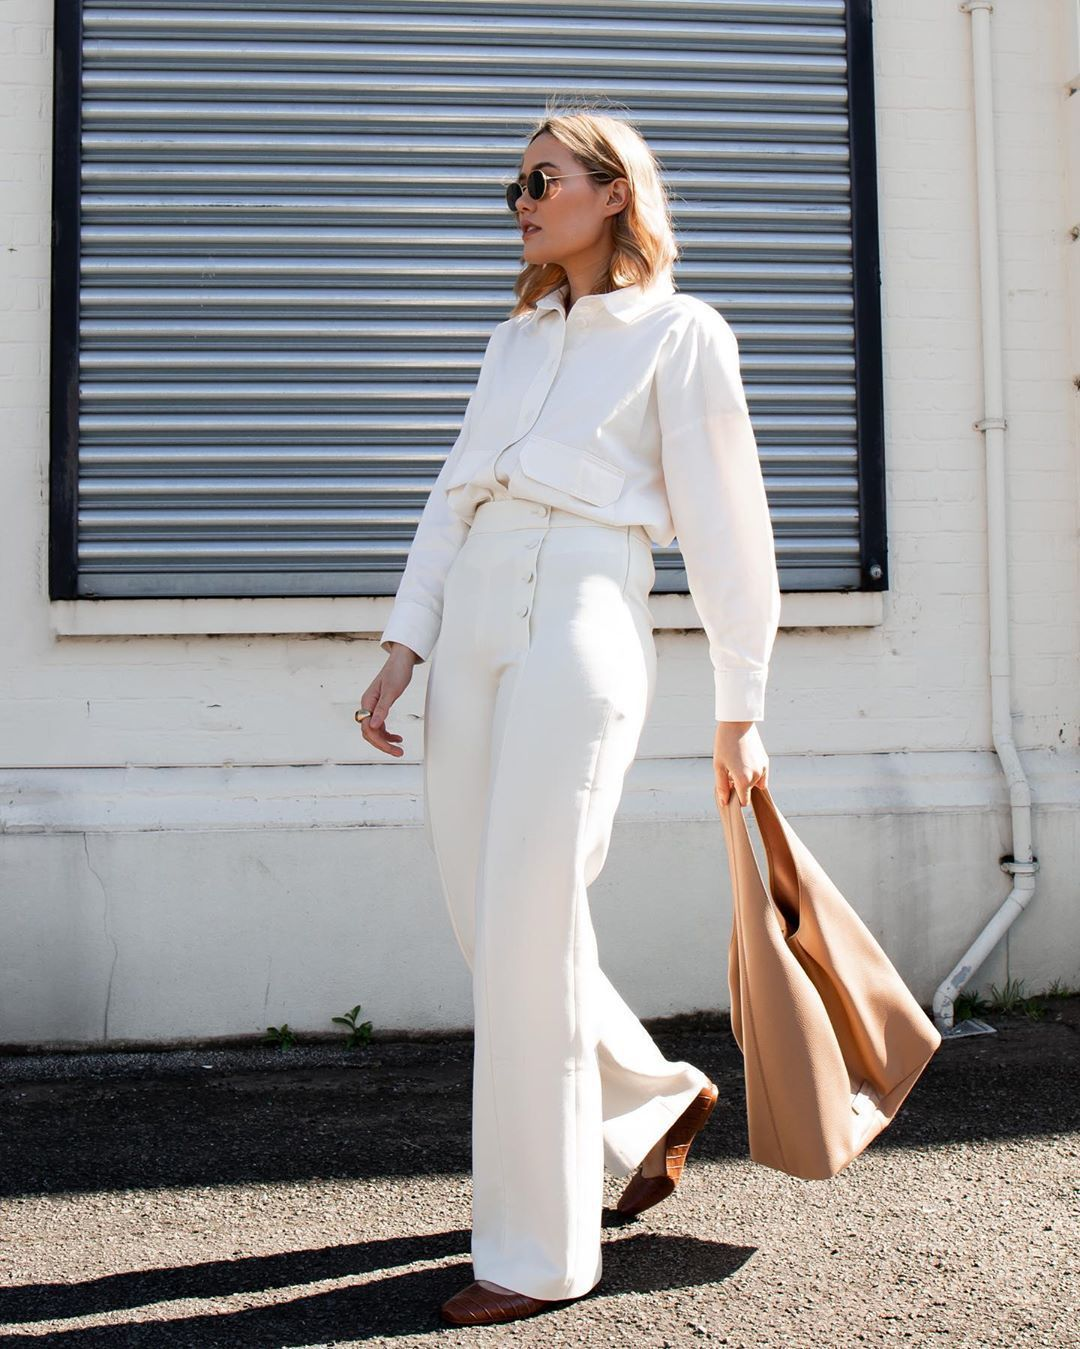 bag shoulder bag wide-leg pants white shirt ballet flats